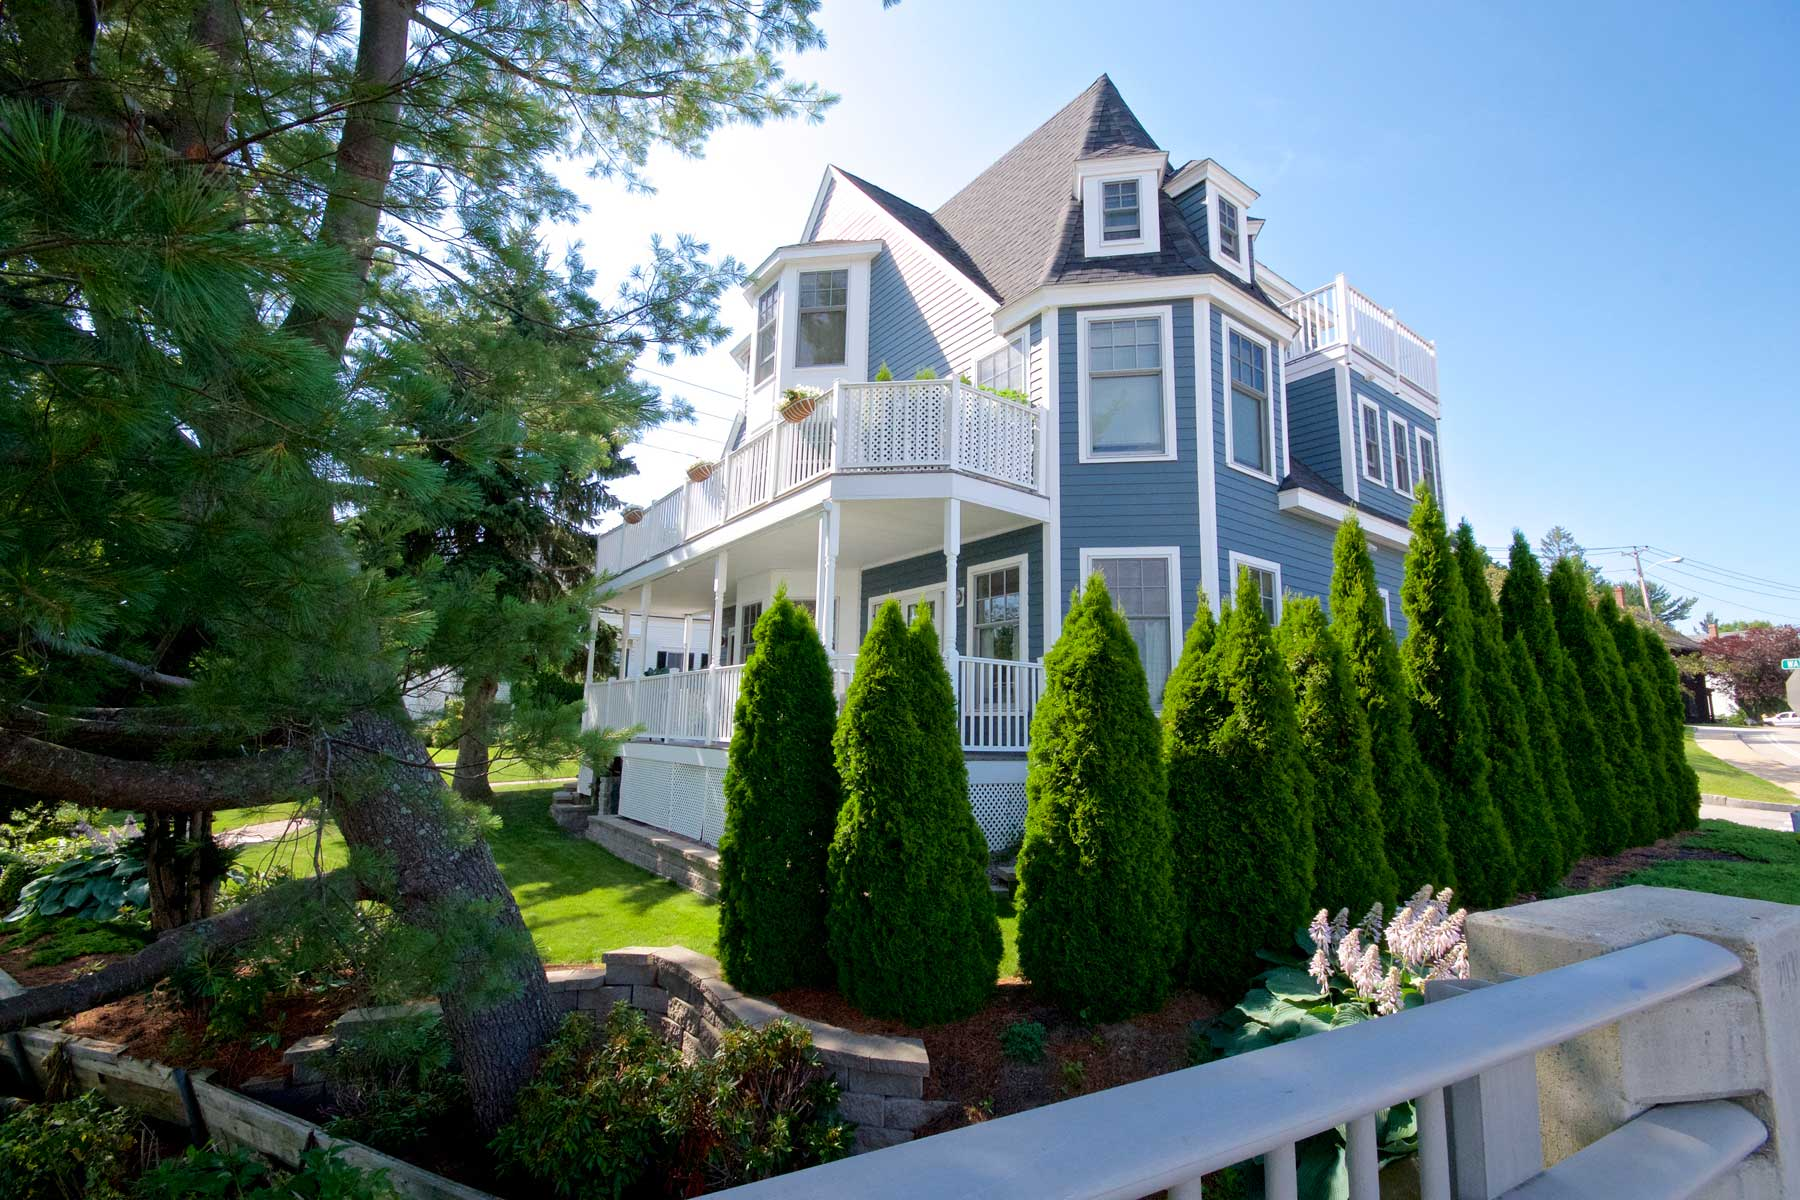 Single Family Home for Sale at Waterfront Condominium in Kittery 17 Water Street Unit 1 Kittery, Maine 03904 United States